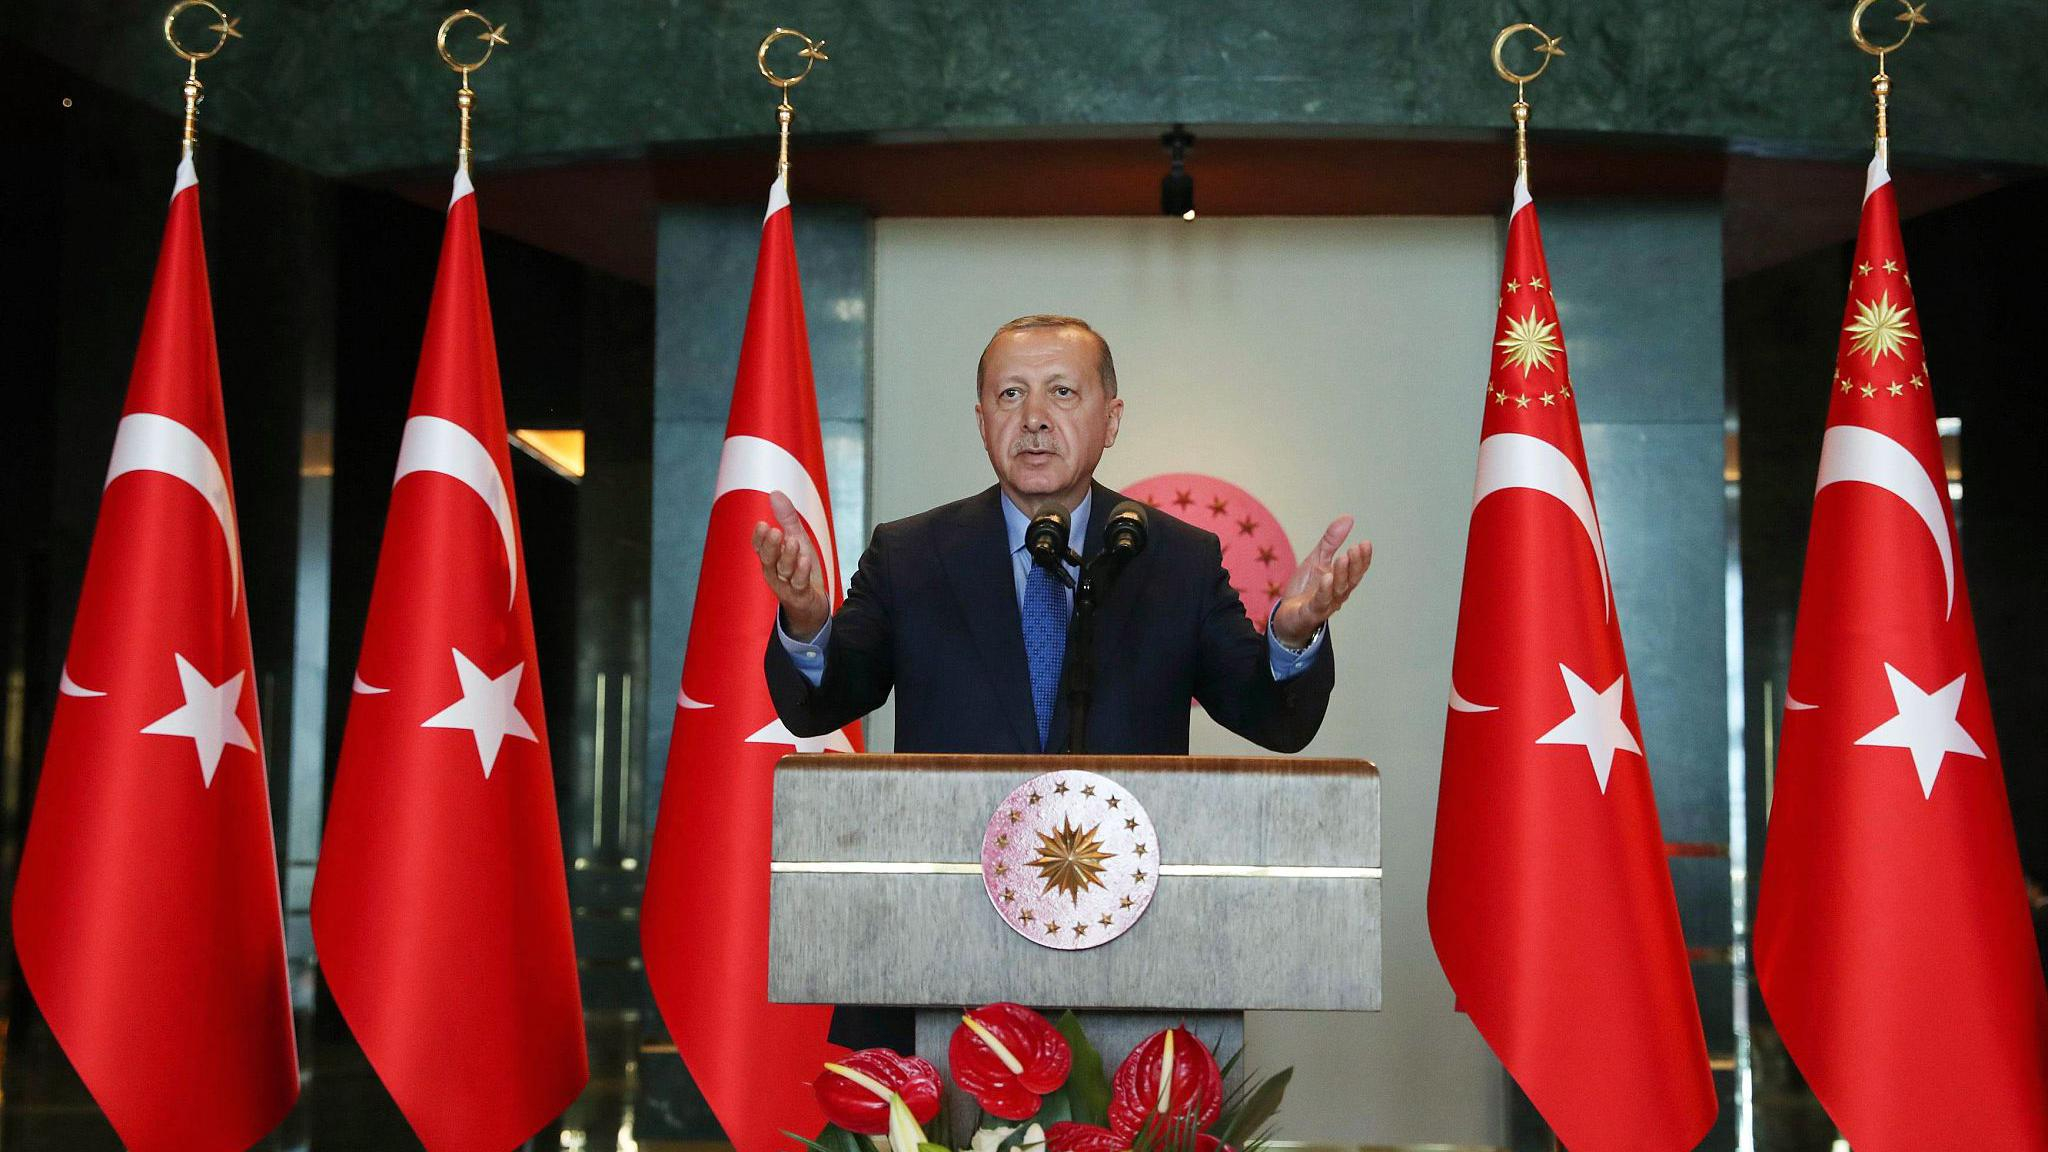 Can Turkey become a normal state?